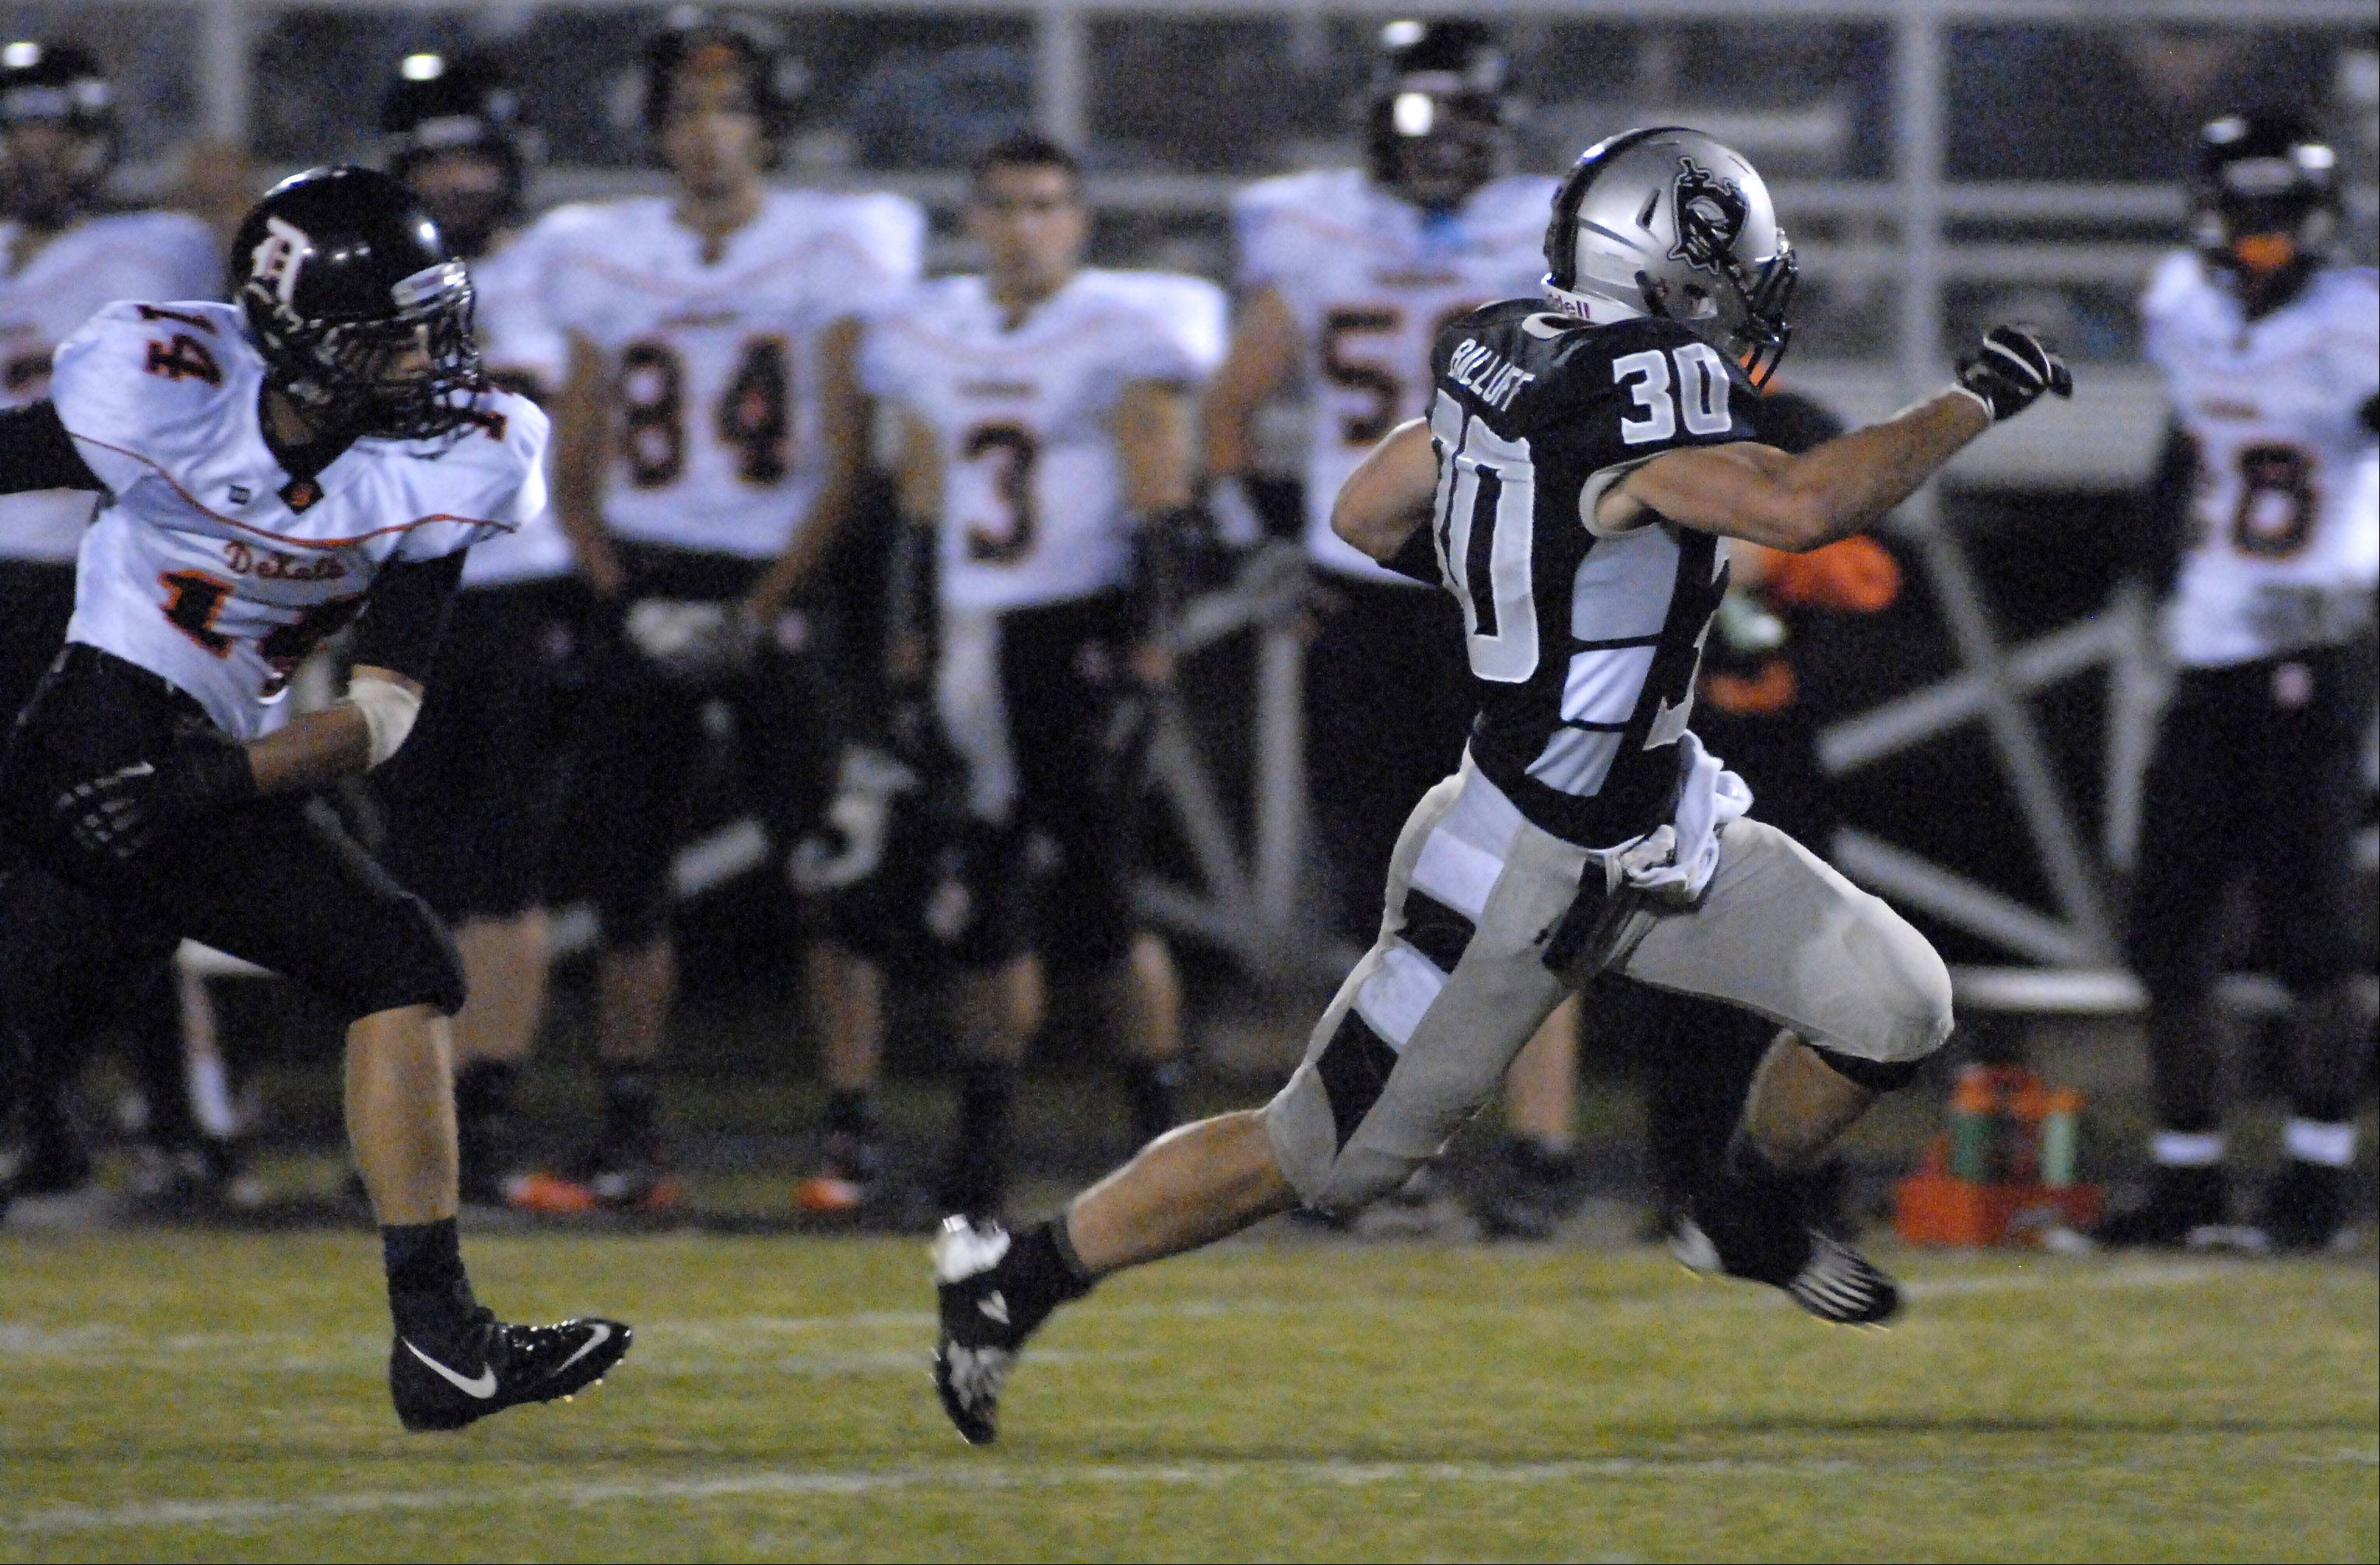 Kaneland's Jesse Balluff shakes off DeKalb's Jake Young in the first quarter en route to the end zone for a touchdown.